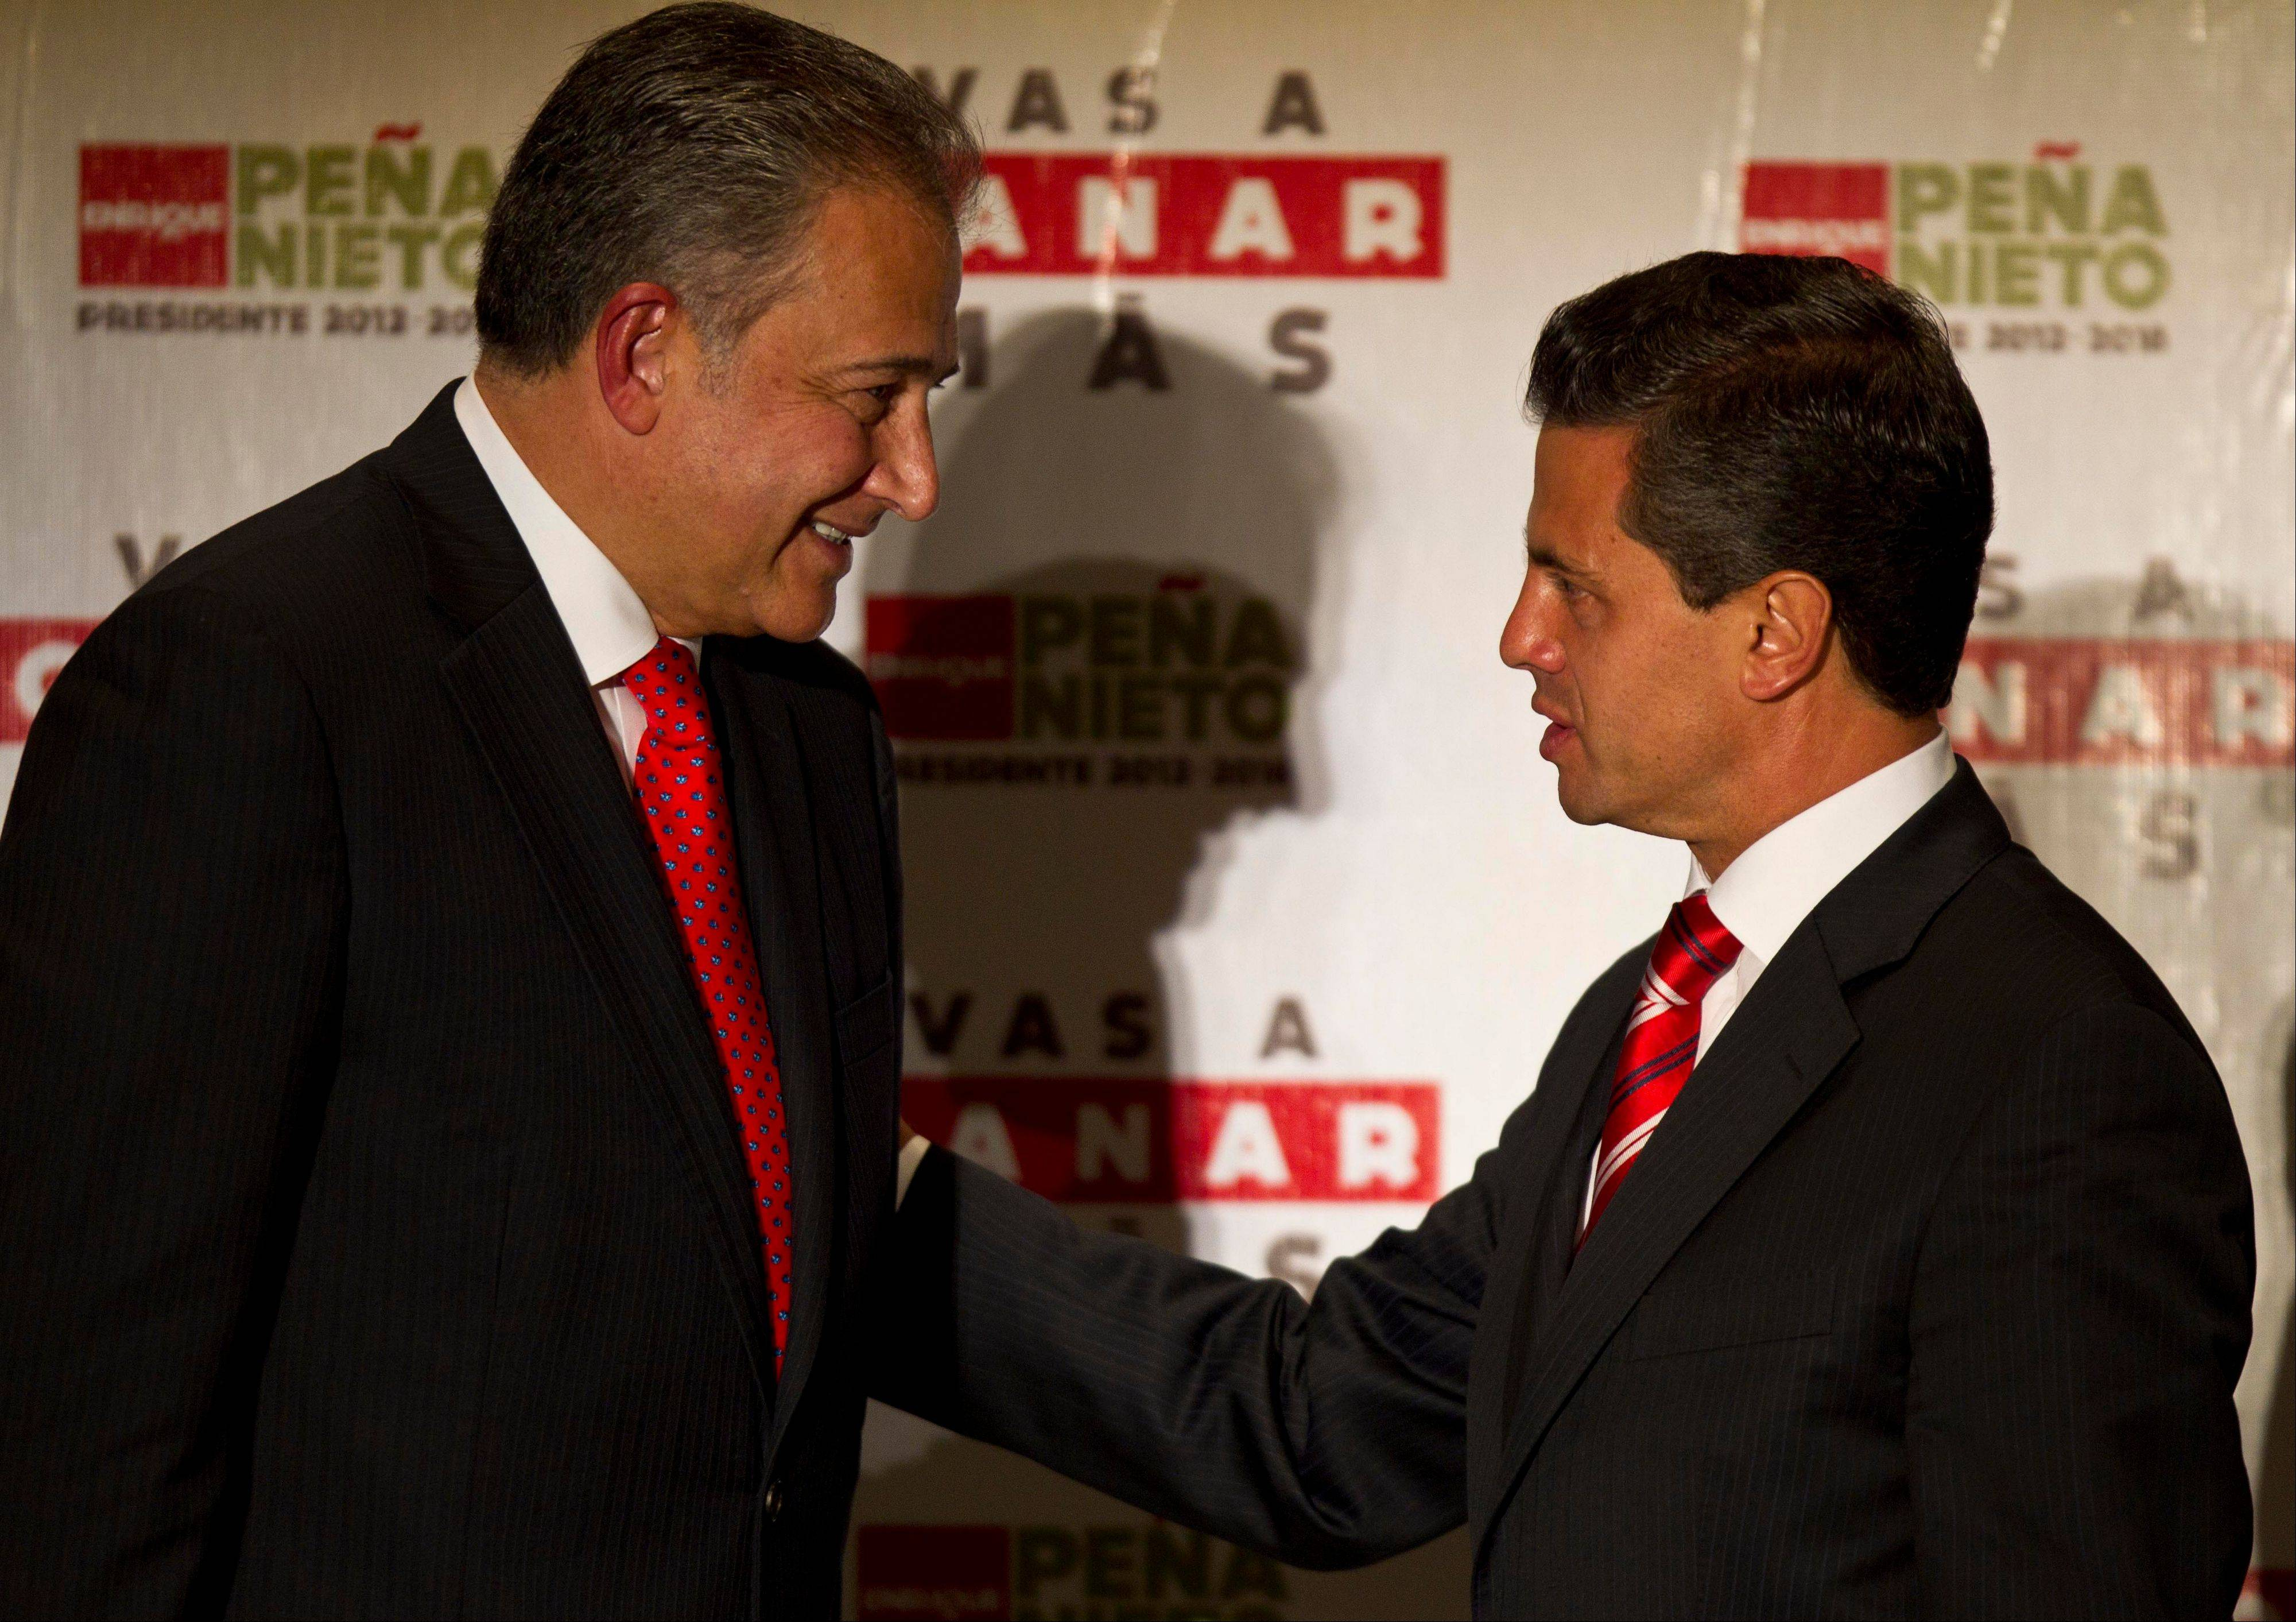 Associated Press/June 14, 2012Then presidential candidate Enrique Pena Nieto, right, of the Institutional Revolutionary Party, greets retired Colombian Gen. Oscar Naranjo during a press conference in Mexico City.